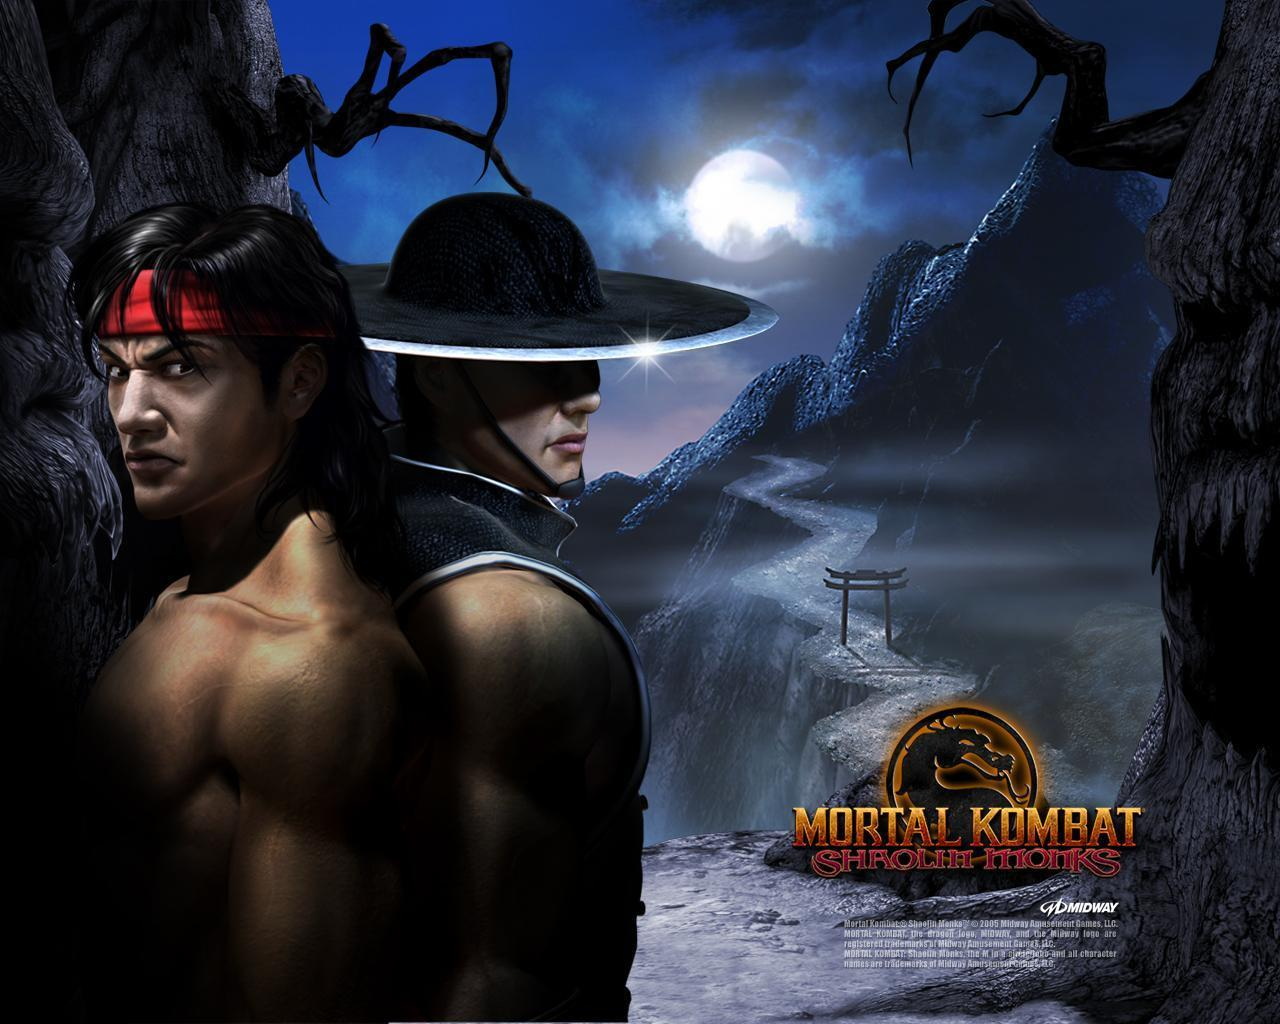 guia mortal combat ps2: